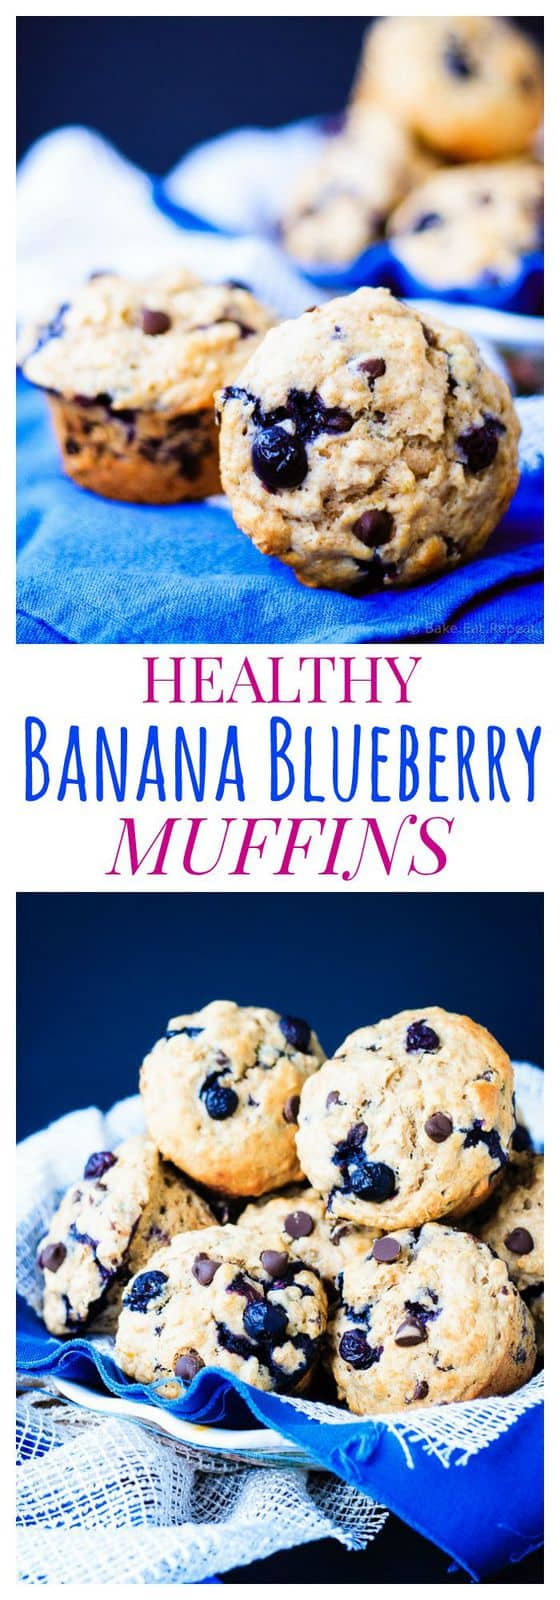 Healthy Banana Blueberry Muffins -  are soft and fluffy, plus packed with fruit and whole grains for a perfect breakfast or snack. | bakeeatrepeat.ca for cupcakesandkalechips.com